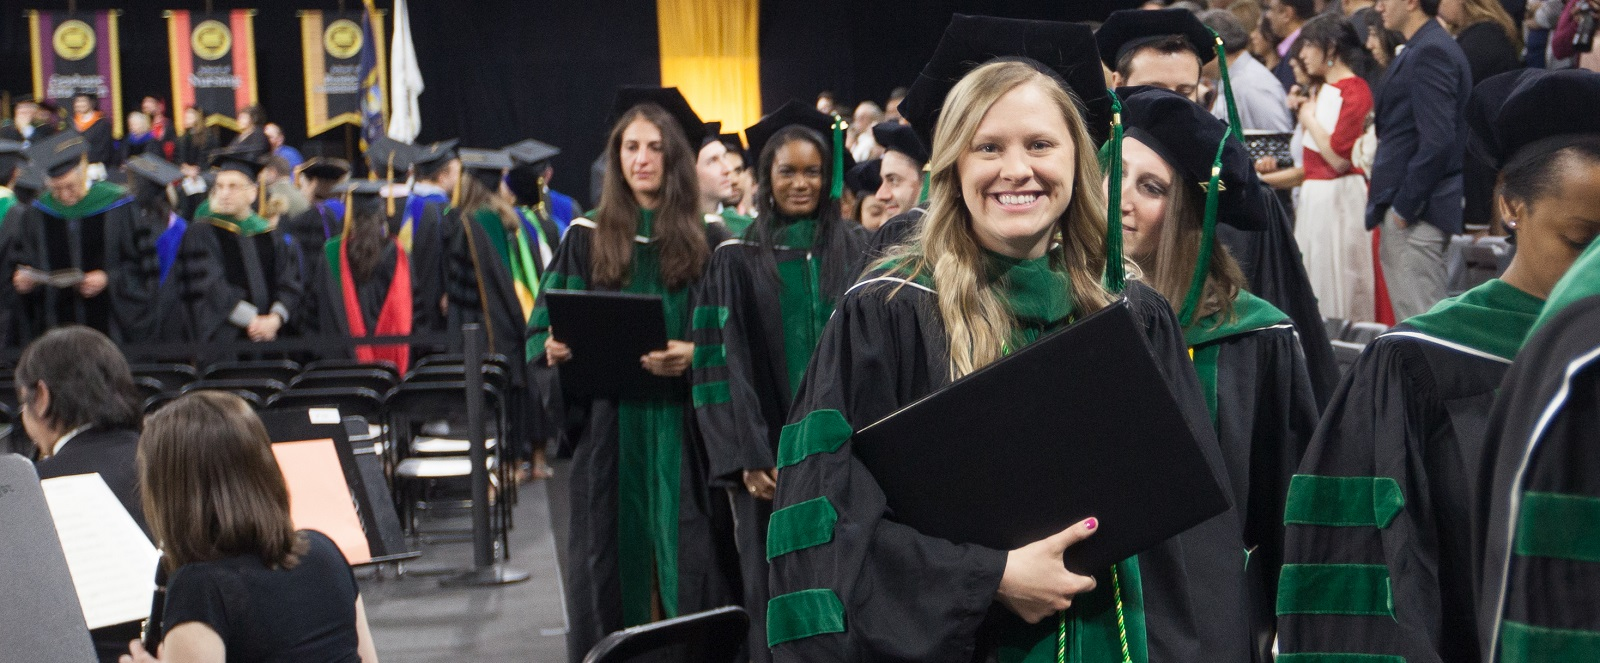 Student walks off stage at commencement holding her diploma holder, smiling at camera.